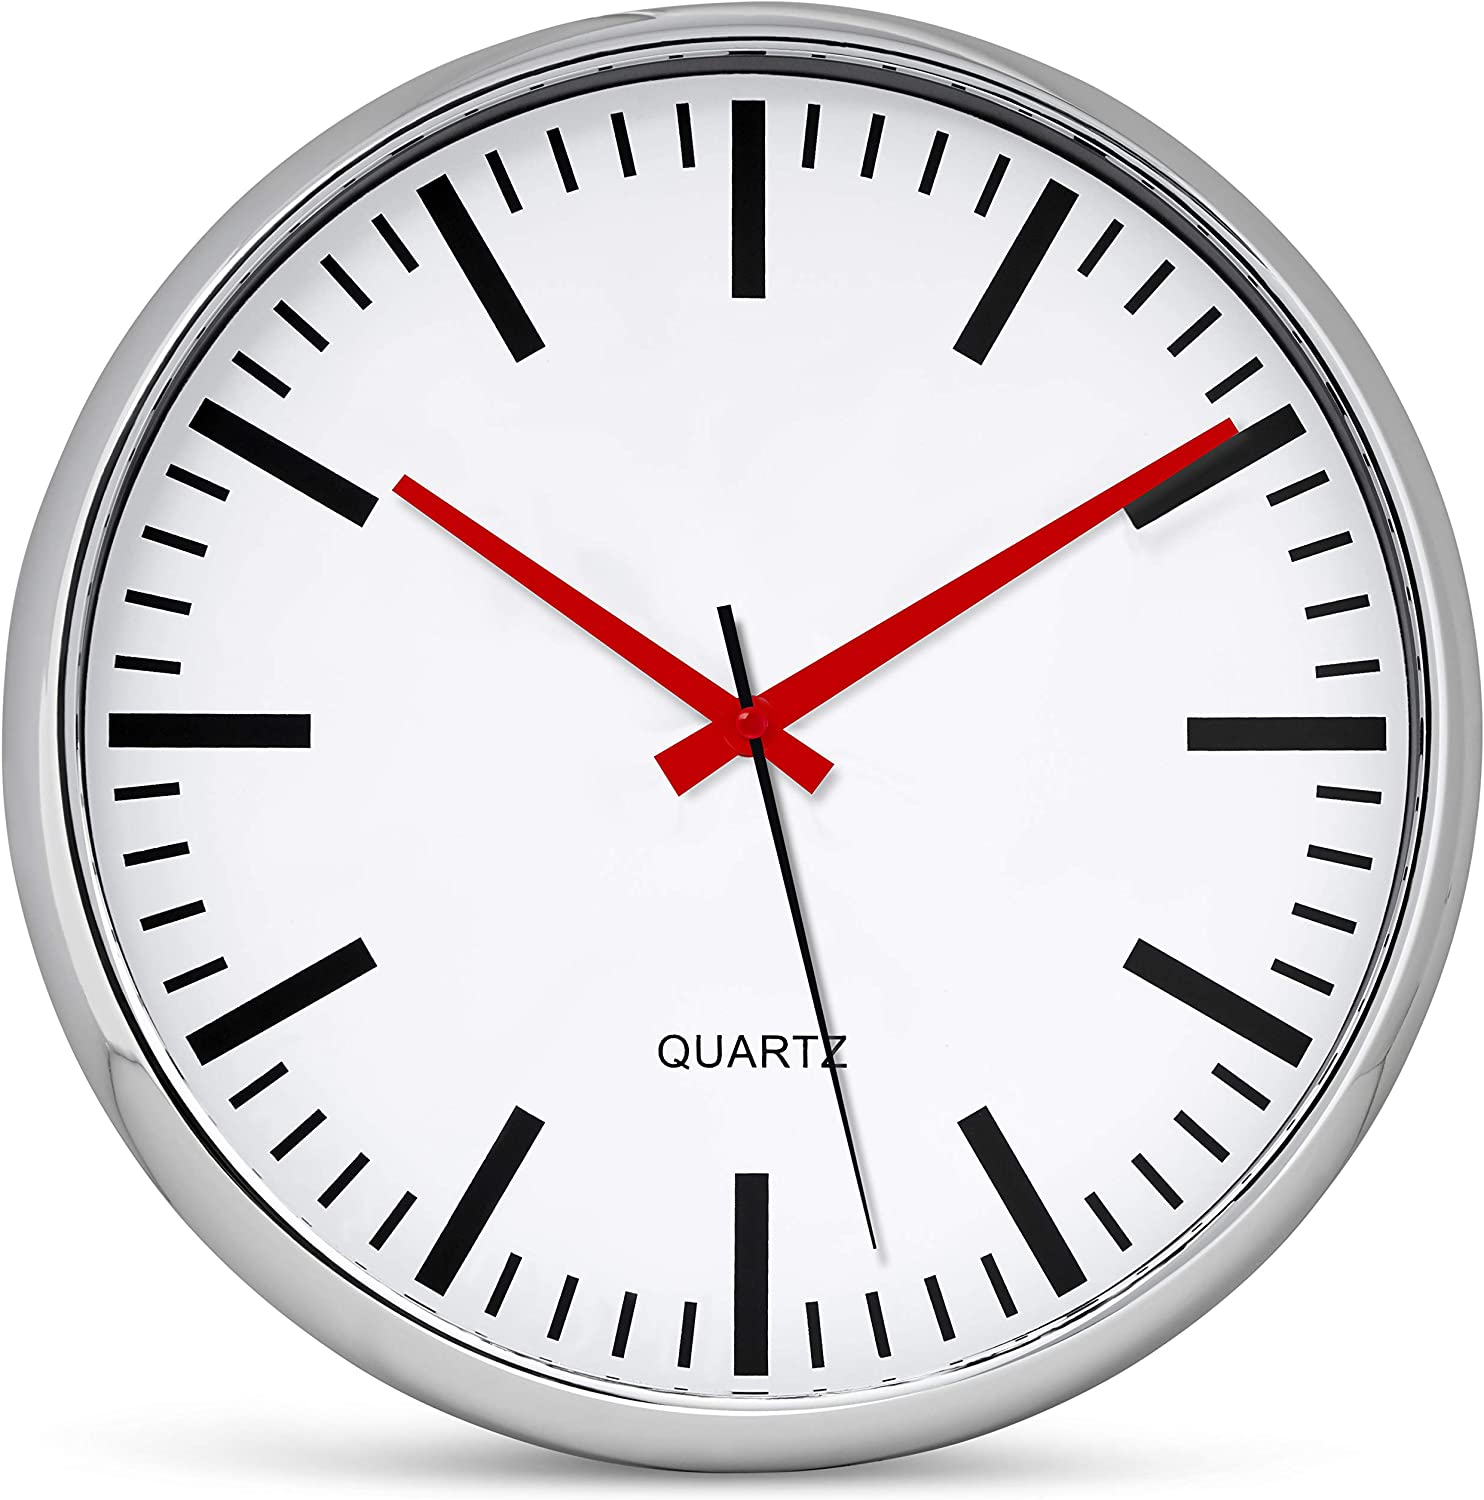 Bernhard Products Metallic Wall Clock 13 Inch Analog Silent Quartz Battery Operated Non-Ticking Quartz Battery Operated Round Decorative Modern Design for Home Kitchen Office (Metallic & Red)